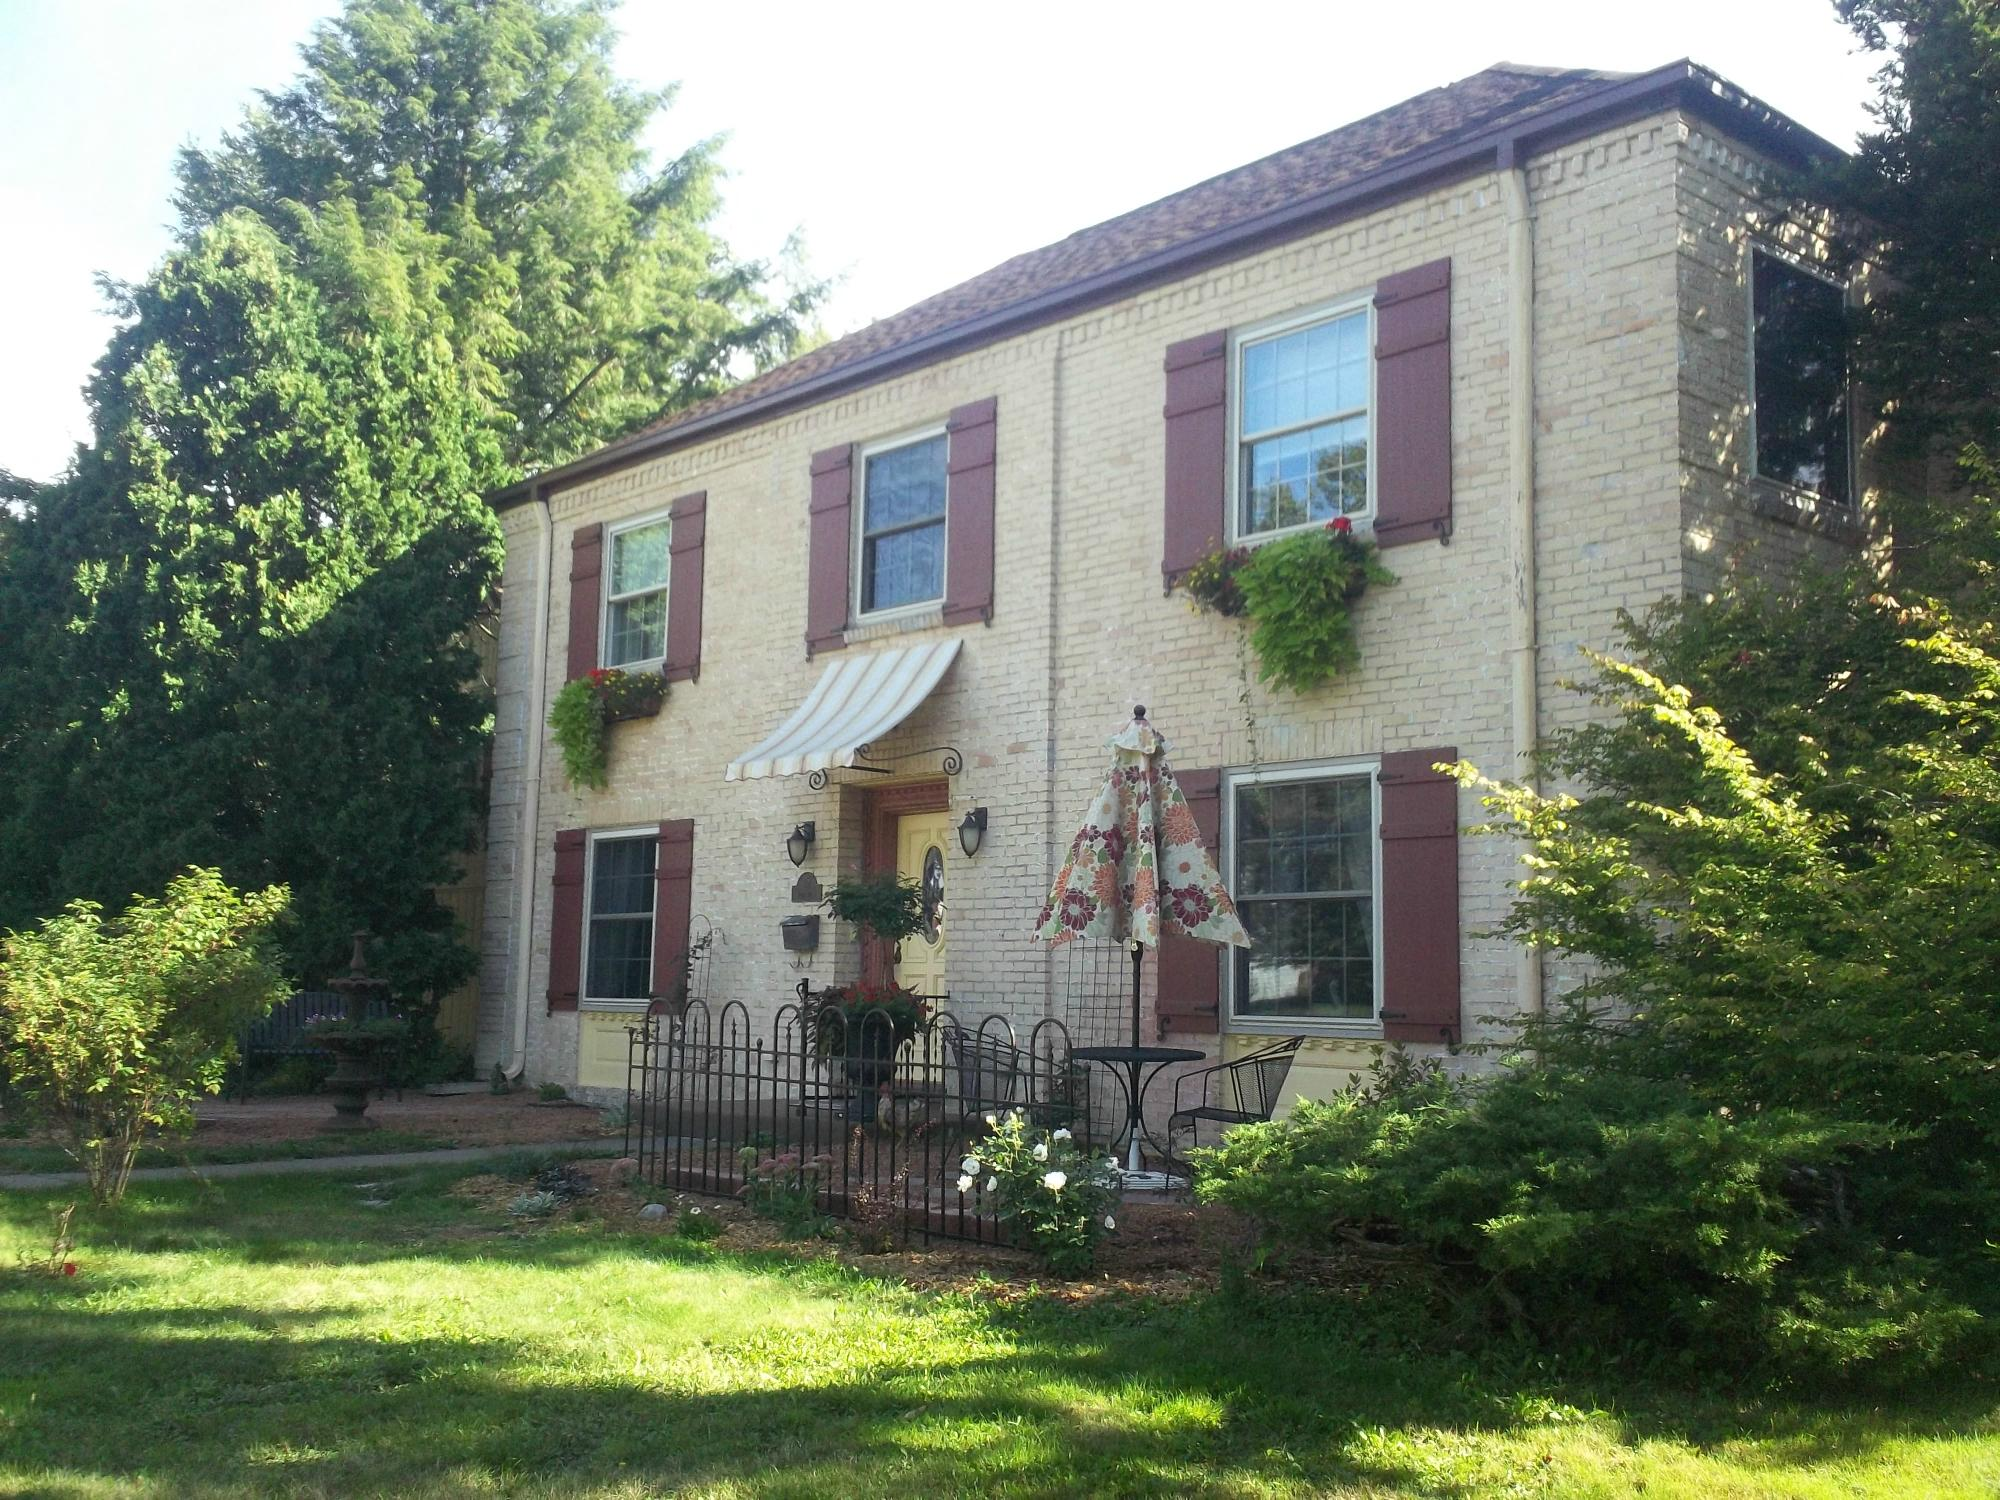 Munro Manor Bed and Breakfast